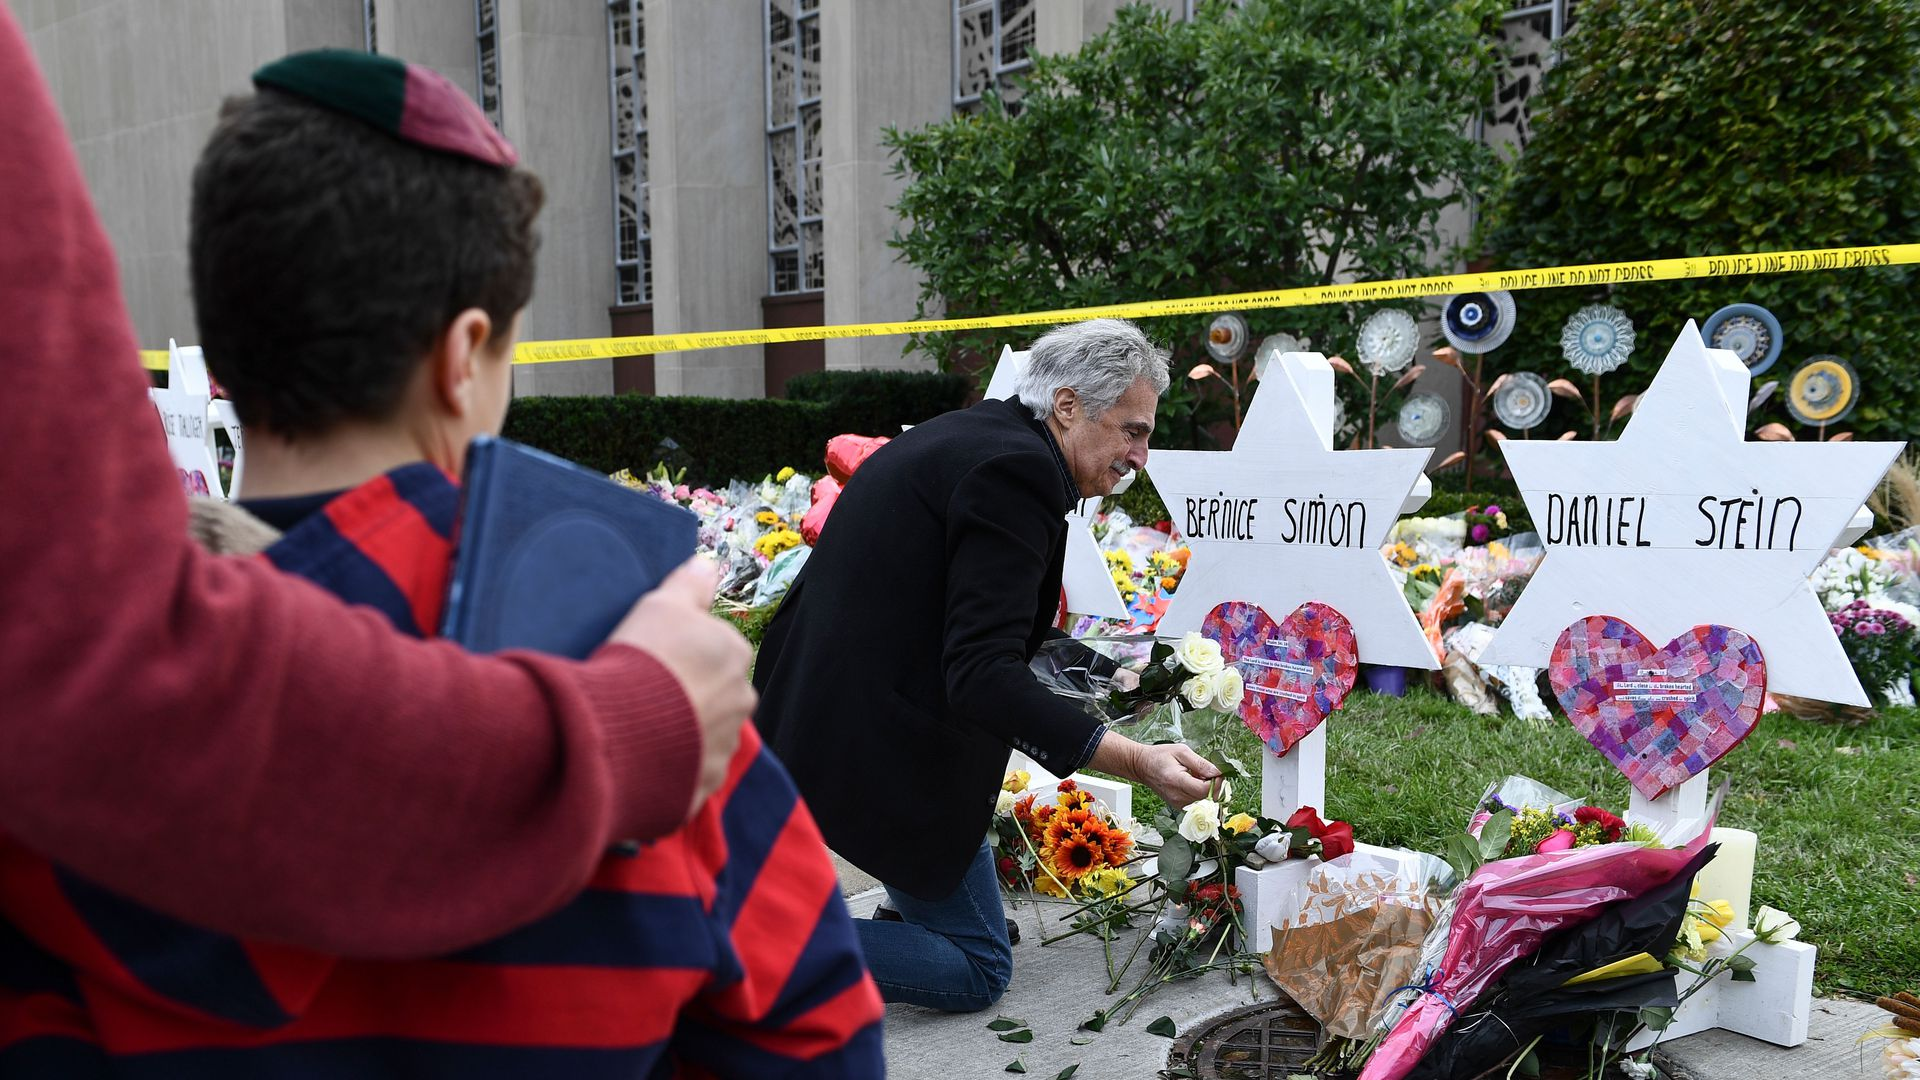 In this image, a man lays flowers at memorials for shooting victims, outside.